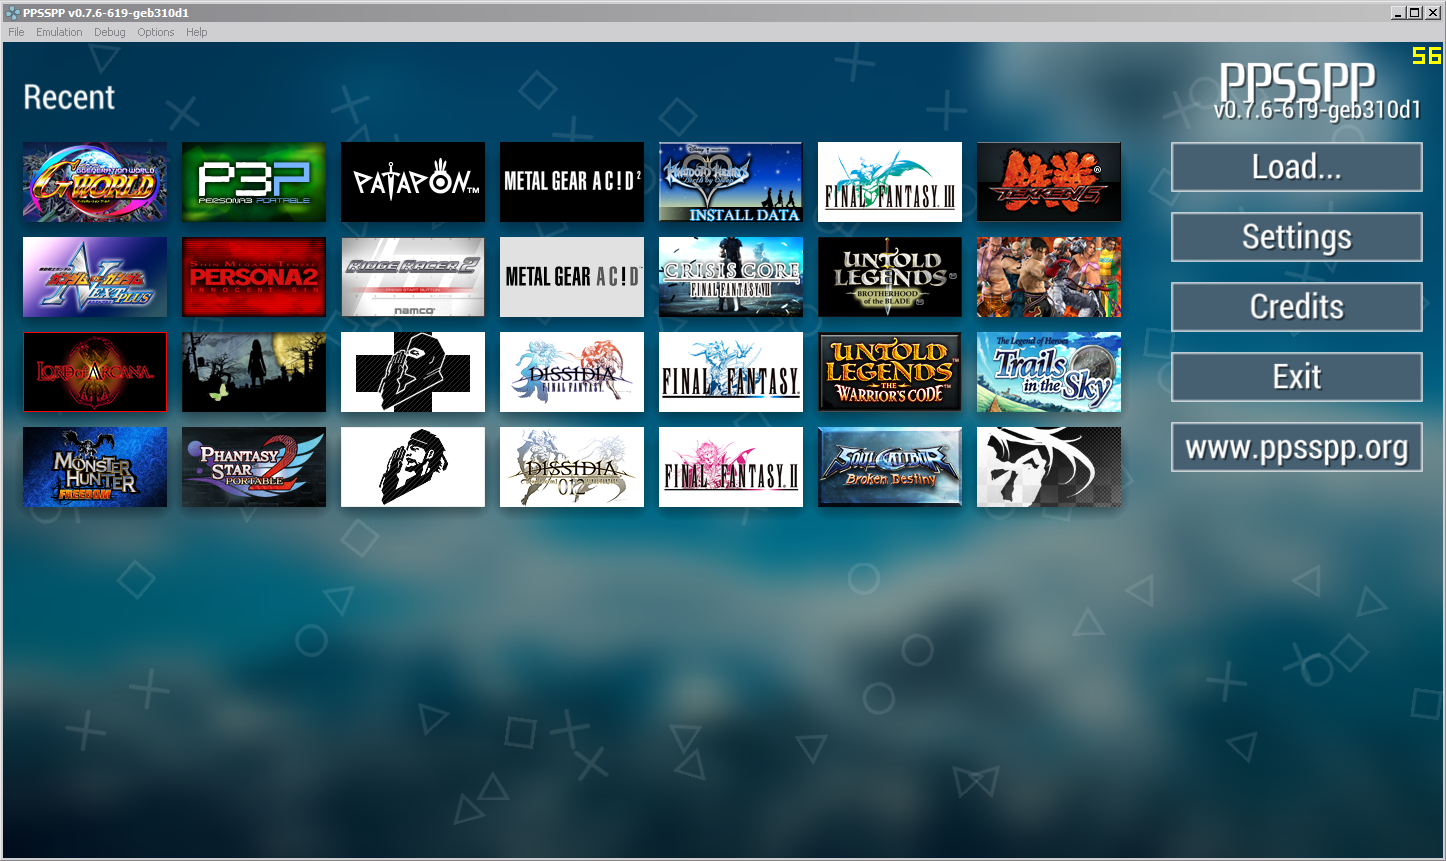 Download PPSSPP, Emulator PSP Terbaik Gratis - Blog Cheat ...